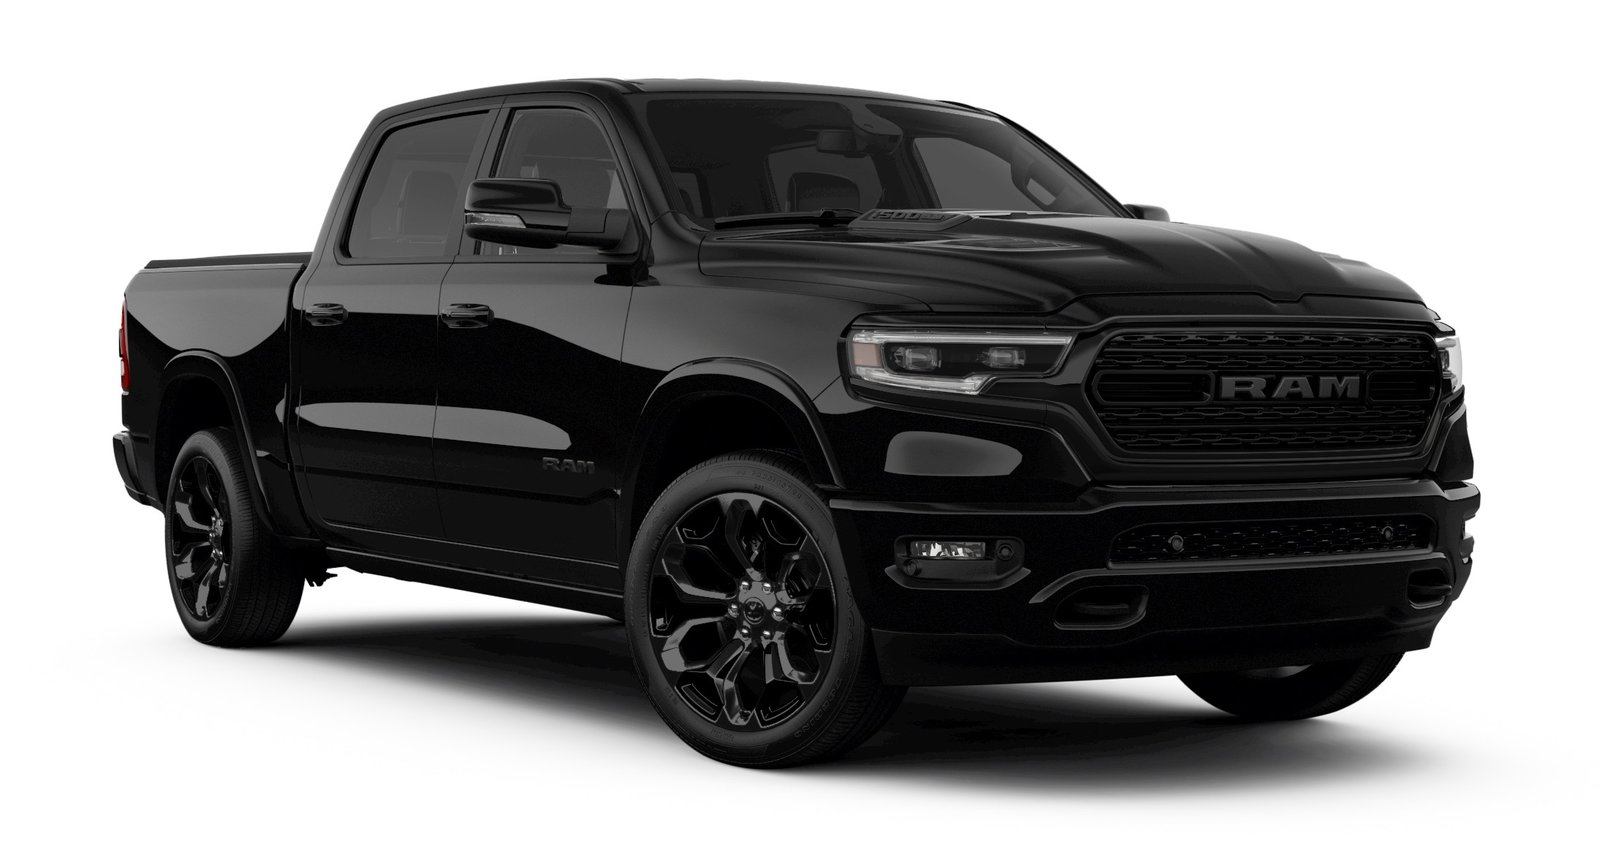 2020 Ram 1500 Limited Black Edition | Top Speed